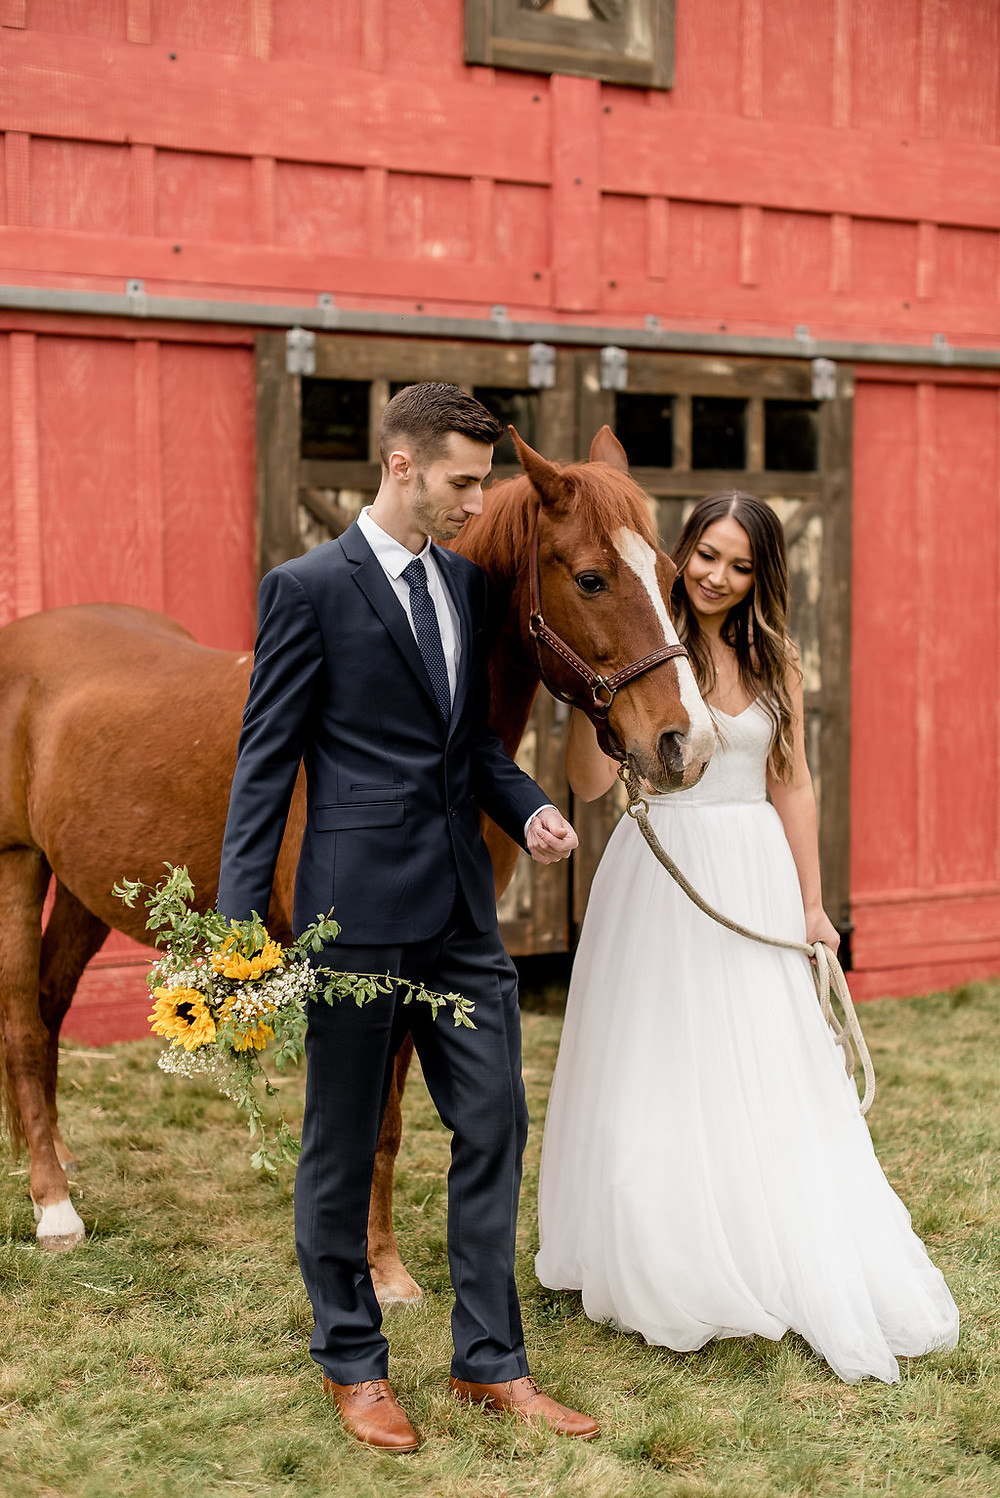 A bride and groom lead a horse in front of rustic traveling wedding venue, Tentwood barn. | My Snohomish Wedding | Snohomish Wedding Planning